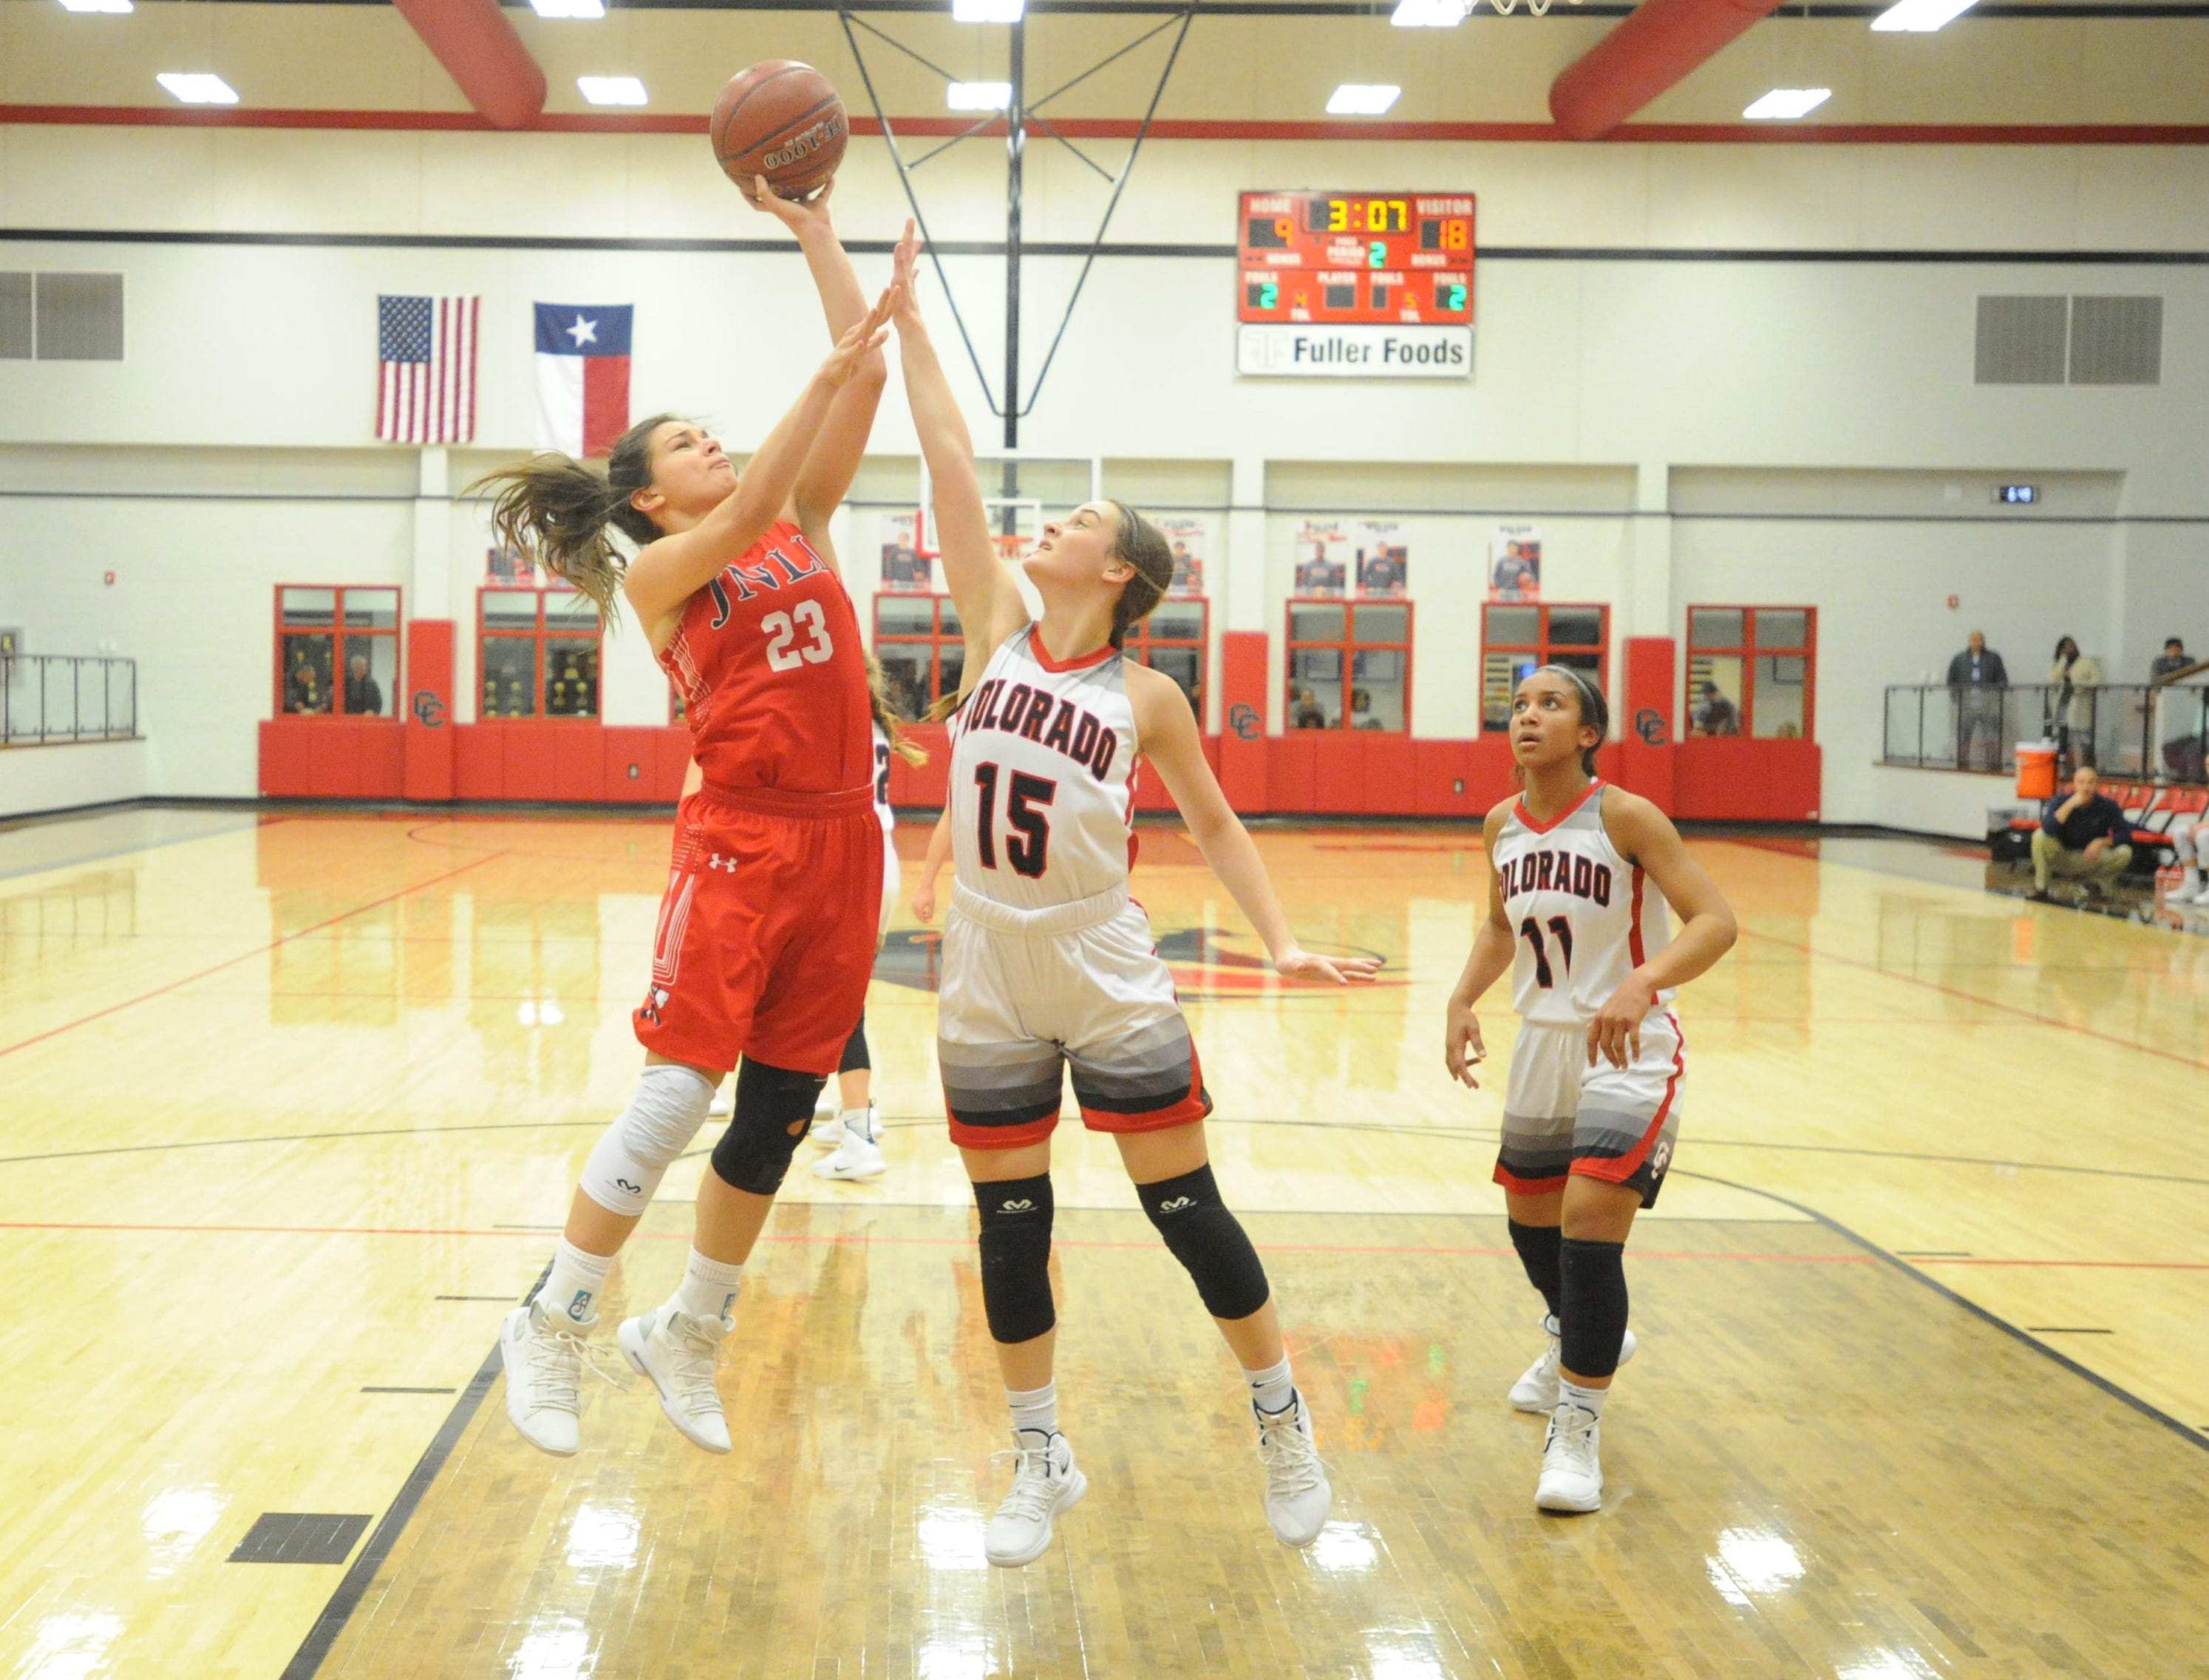 Jim Ned's Libby Tutt (23) goes for a shot in the lane in front of Colorado City guard Kaci Hudson (15).